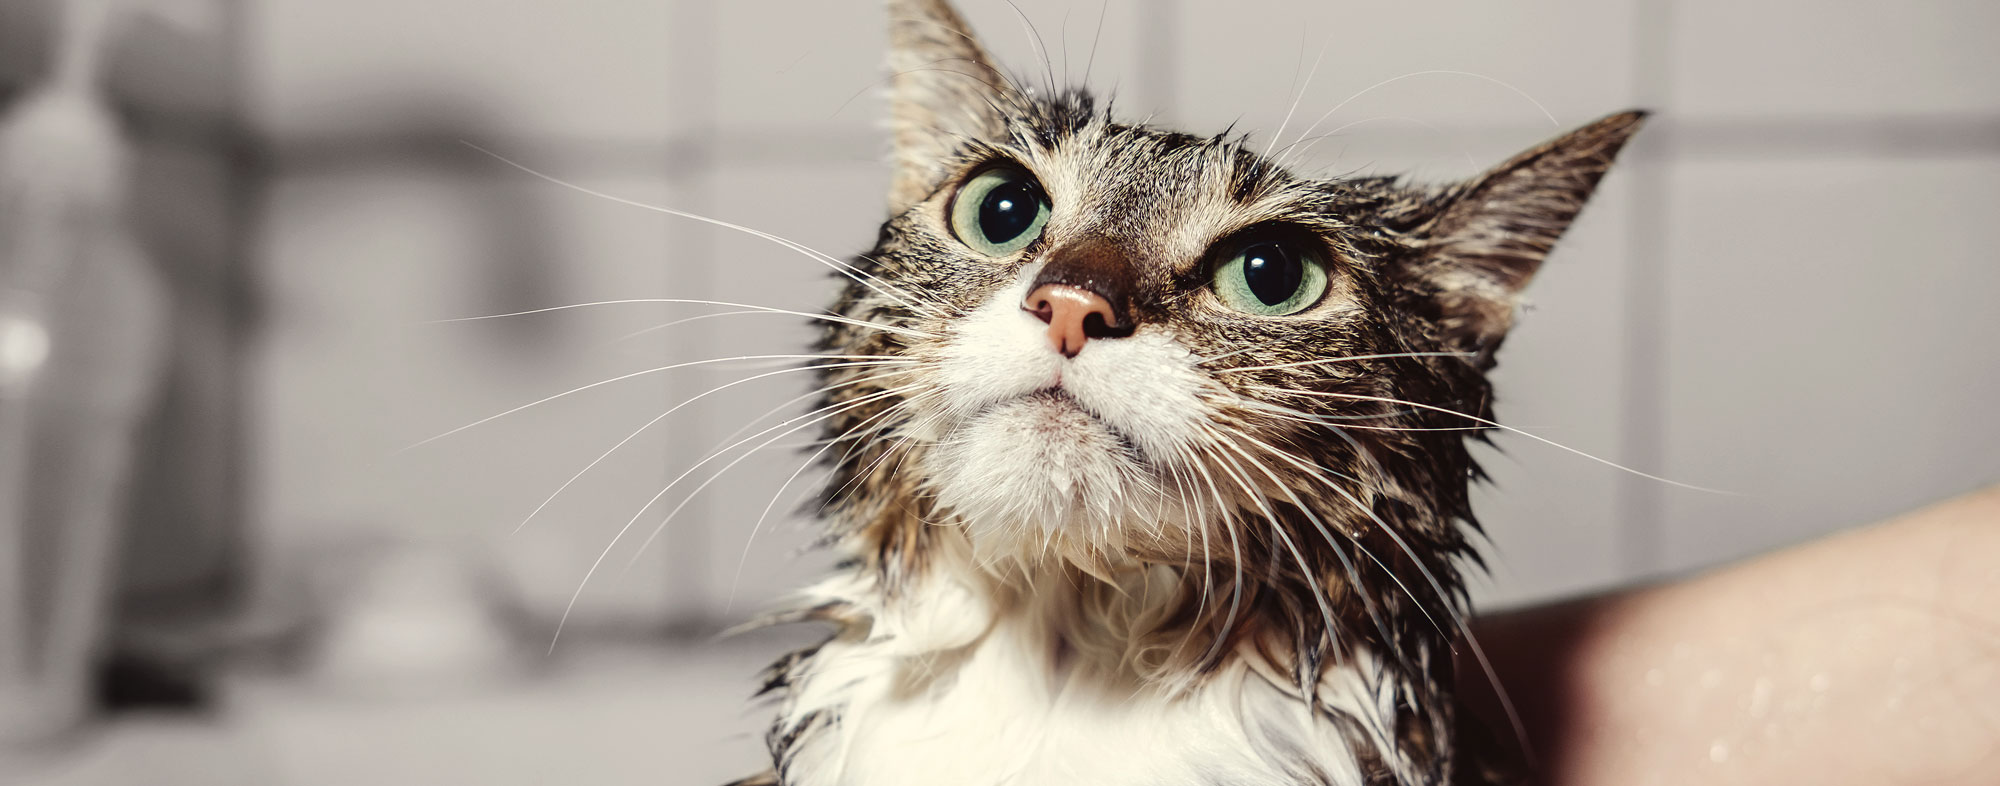 A flea and tick shampoo will rid your cat of pests in one wash